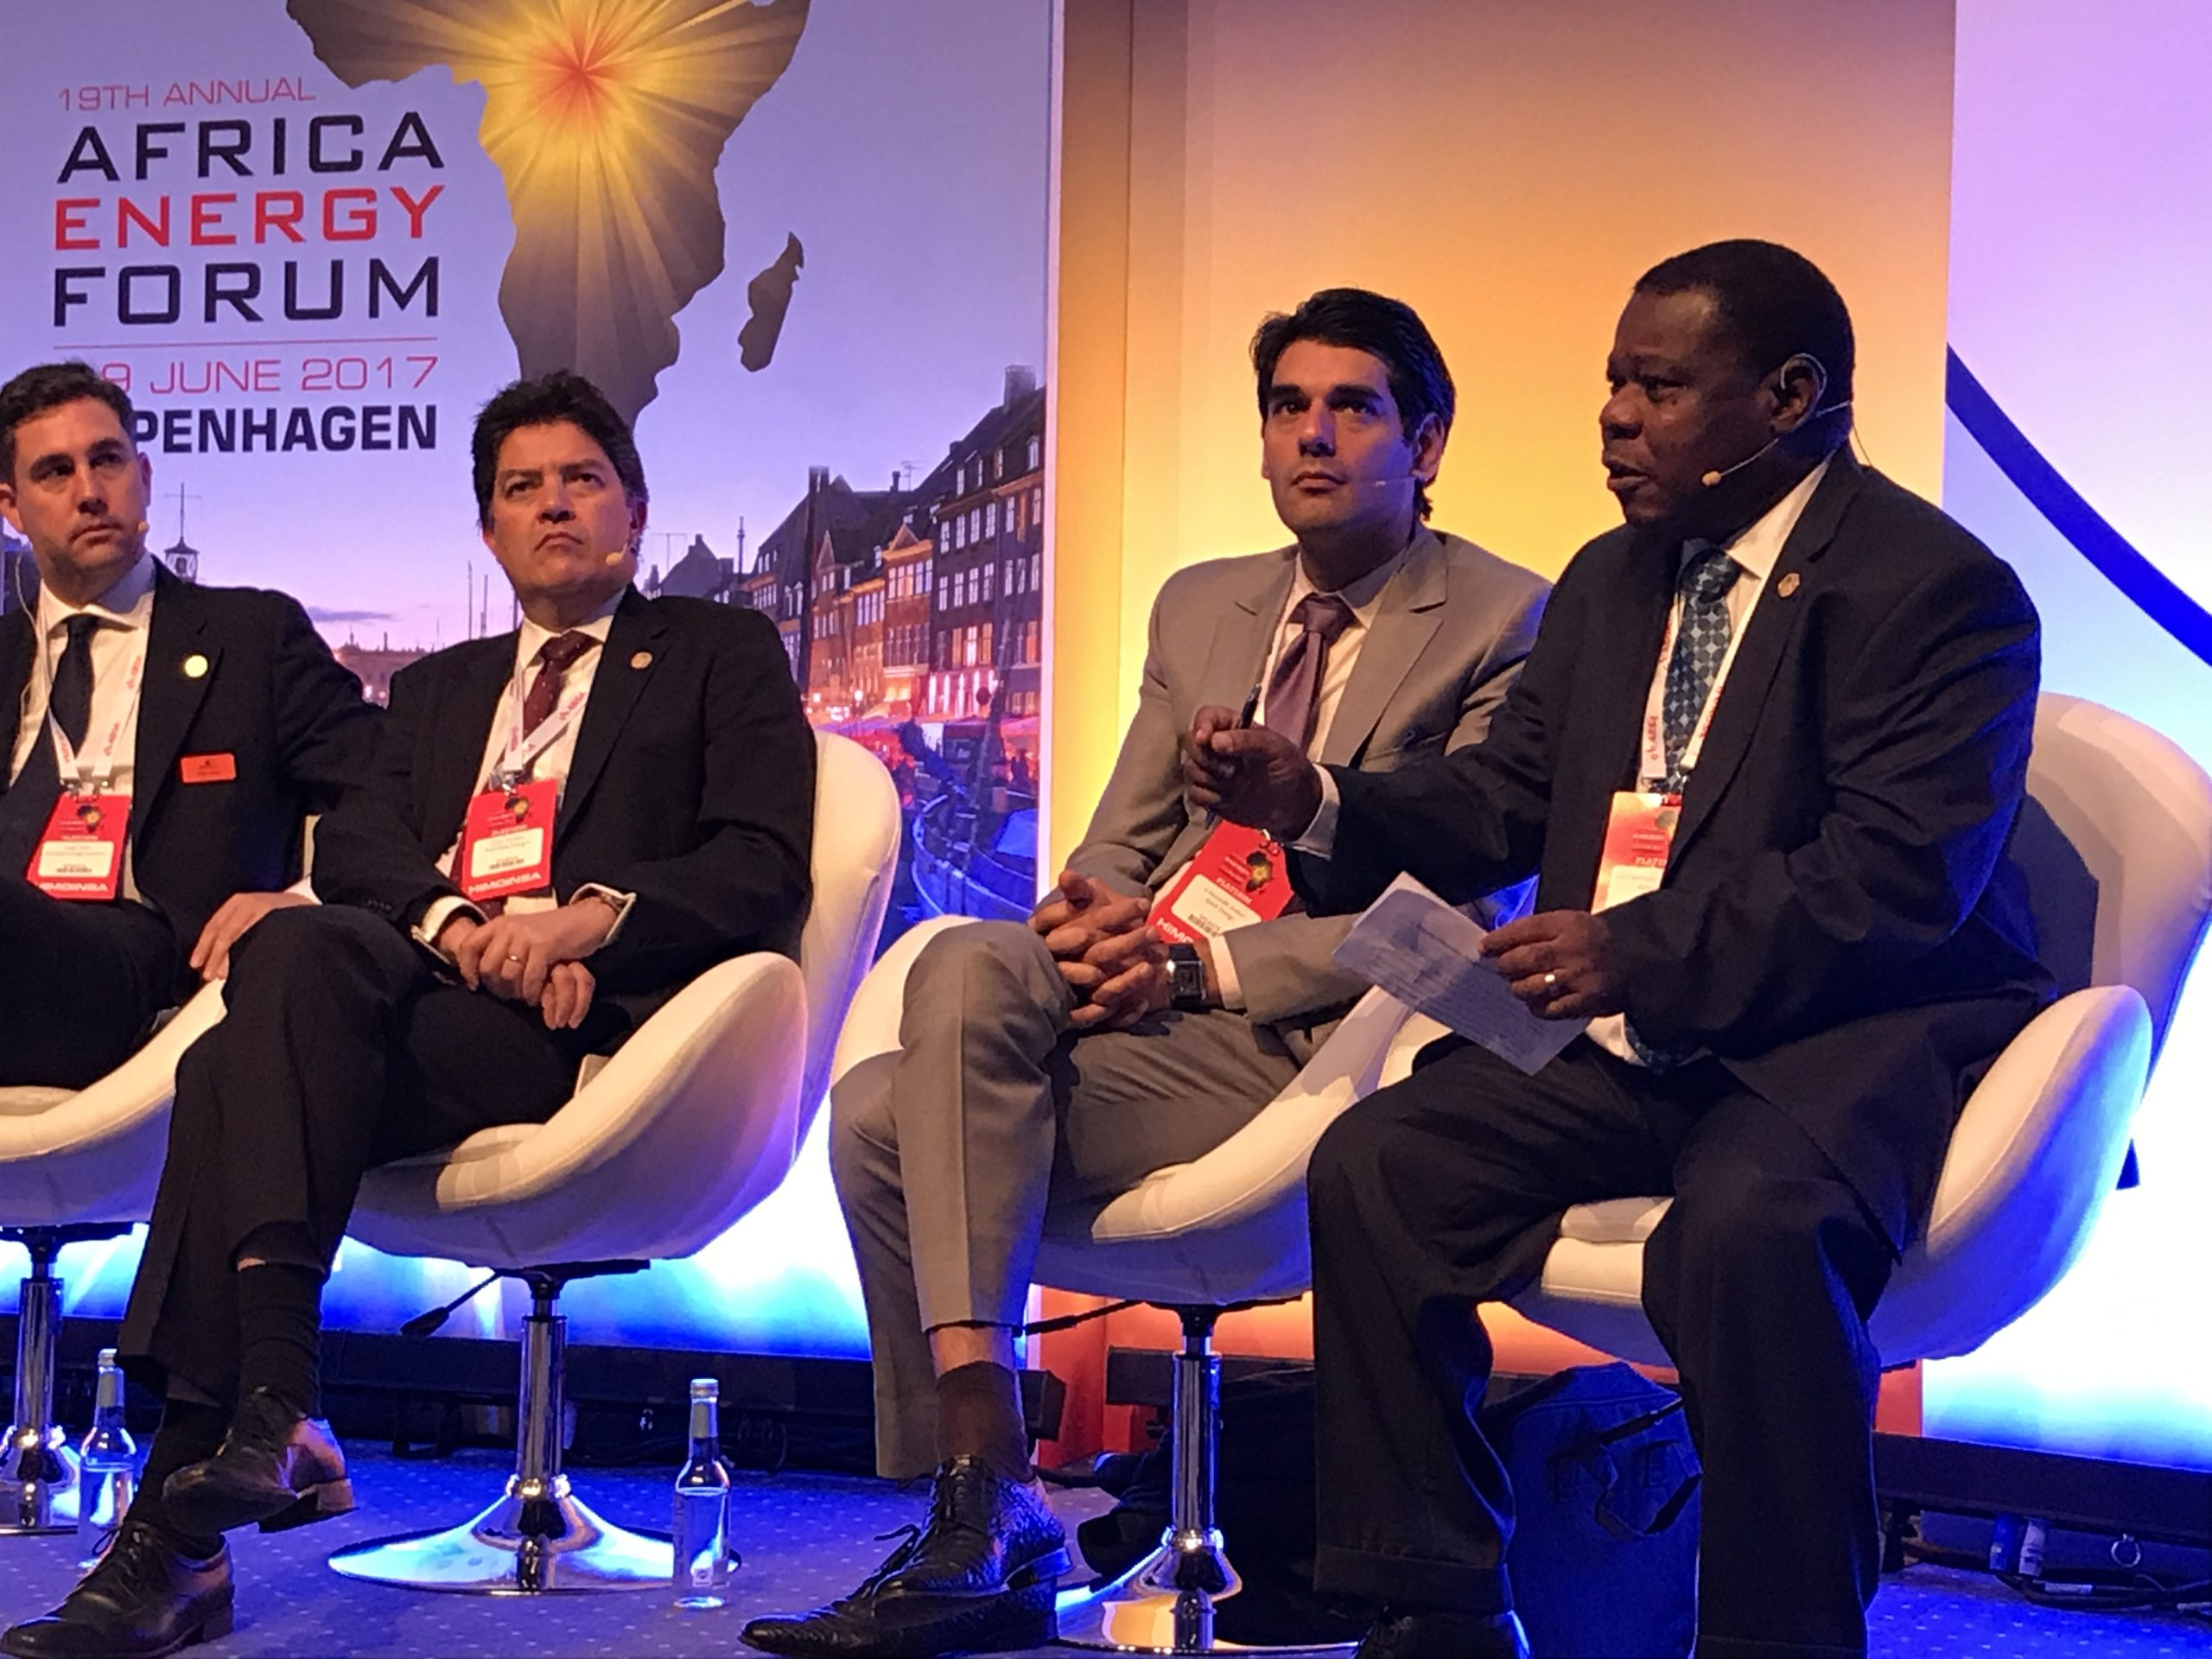 Salvador Namburete, Mozambique's former energy minister on a panel at AEF 2017.